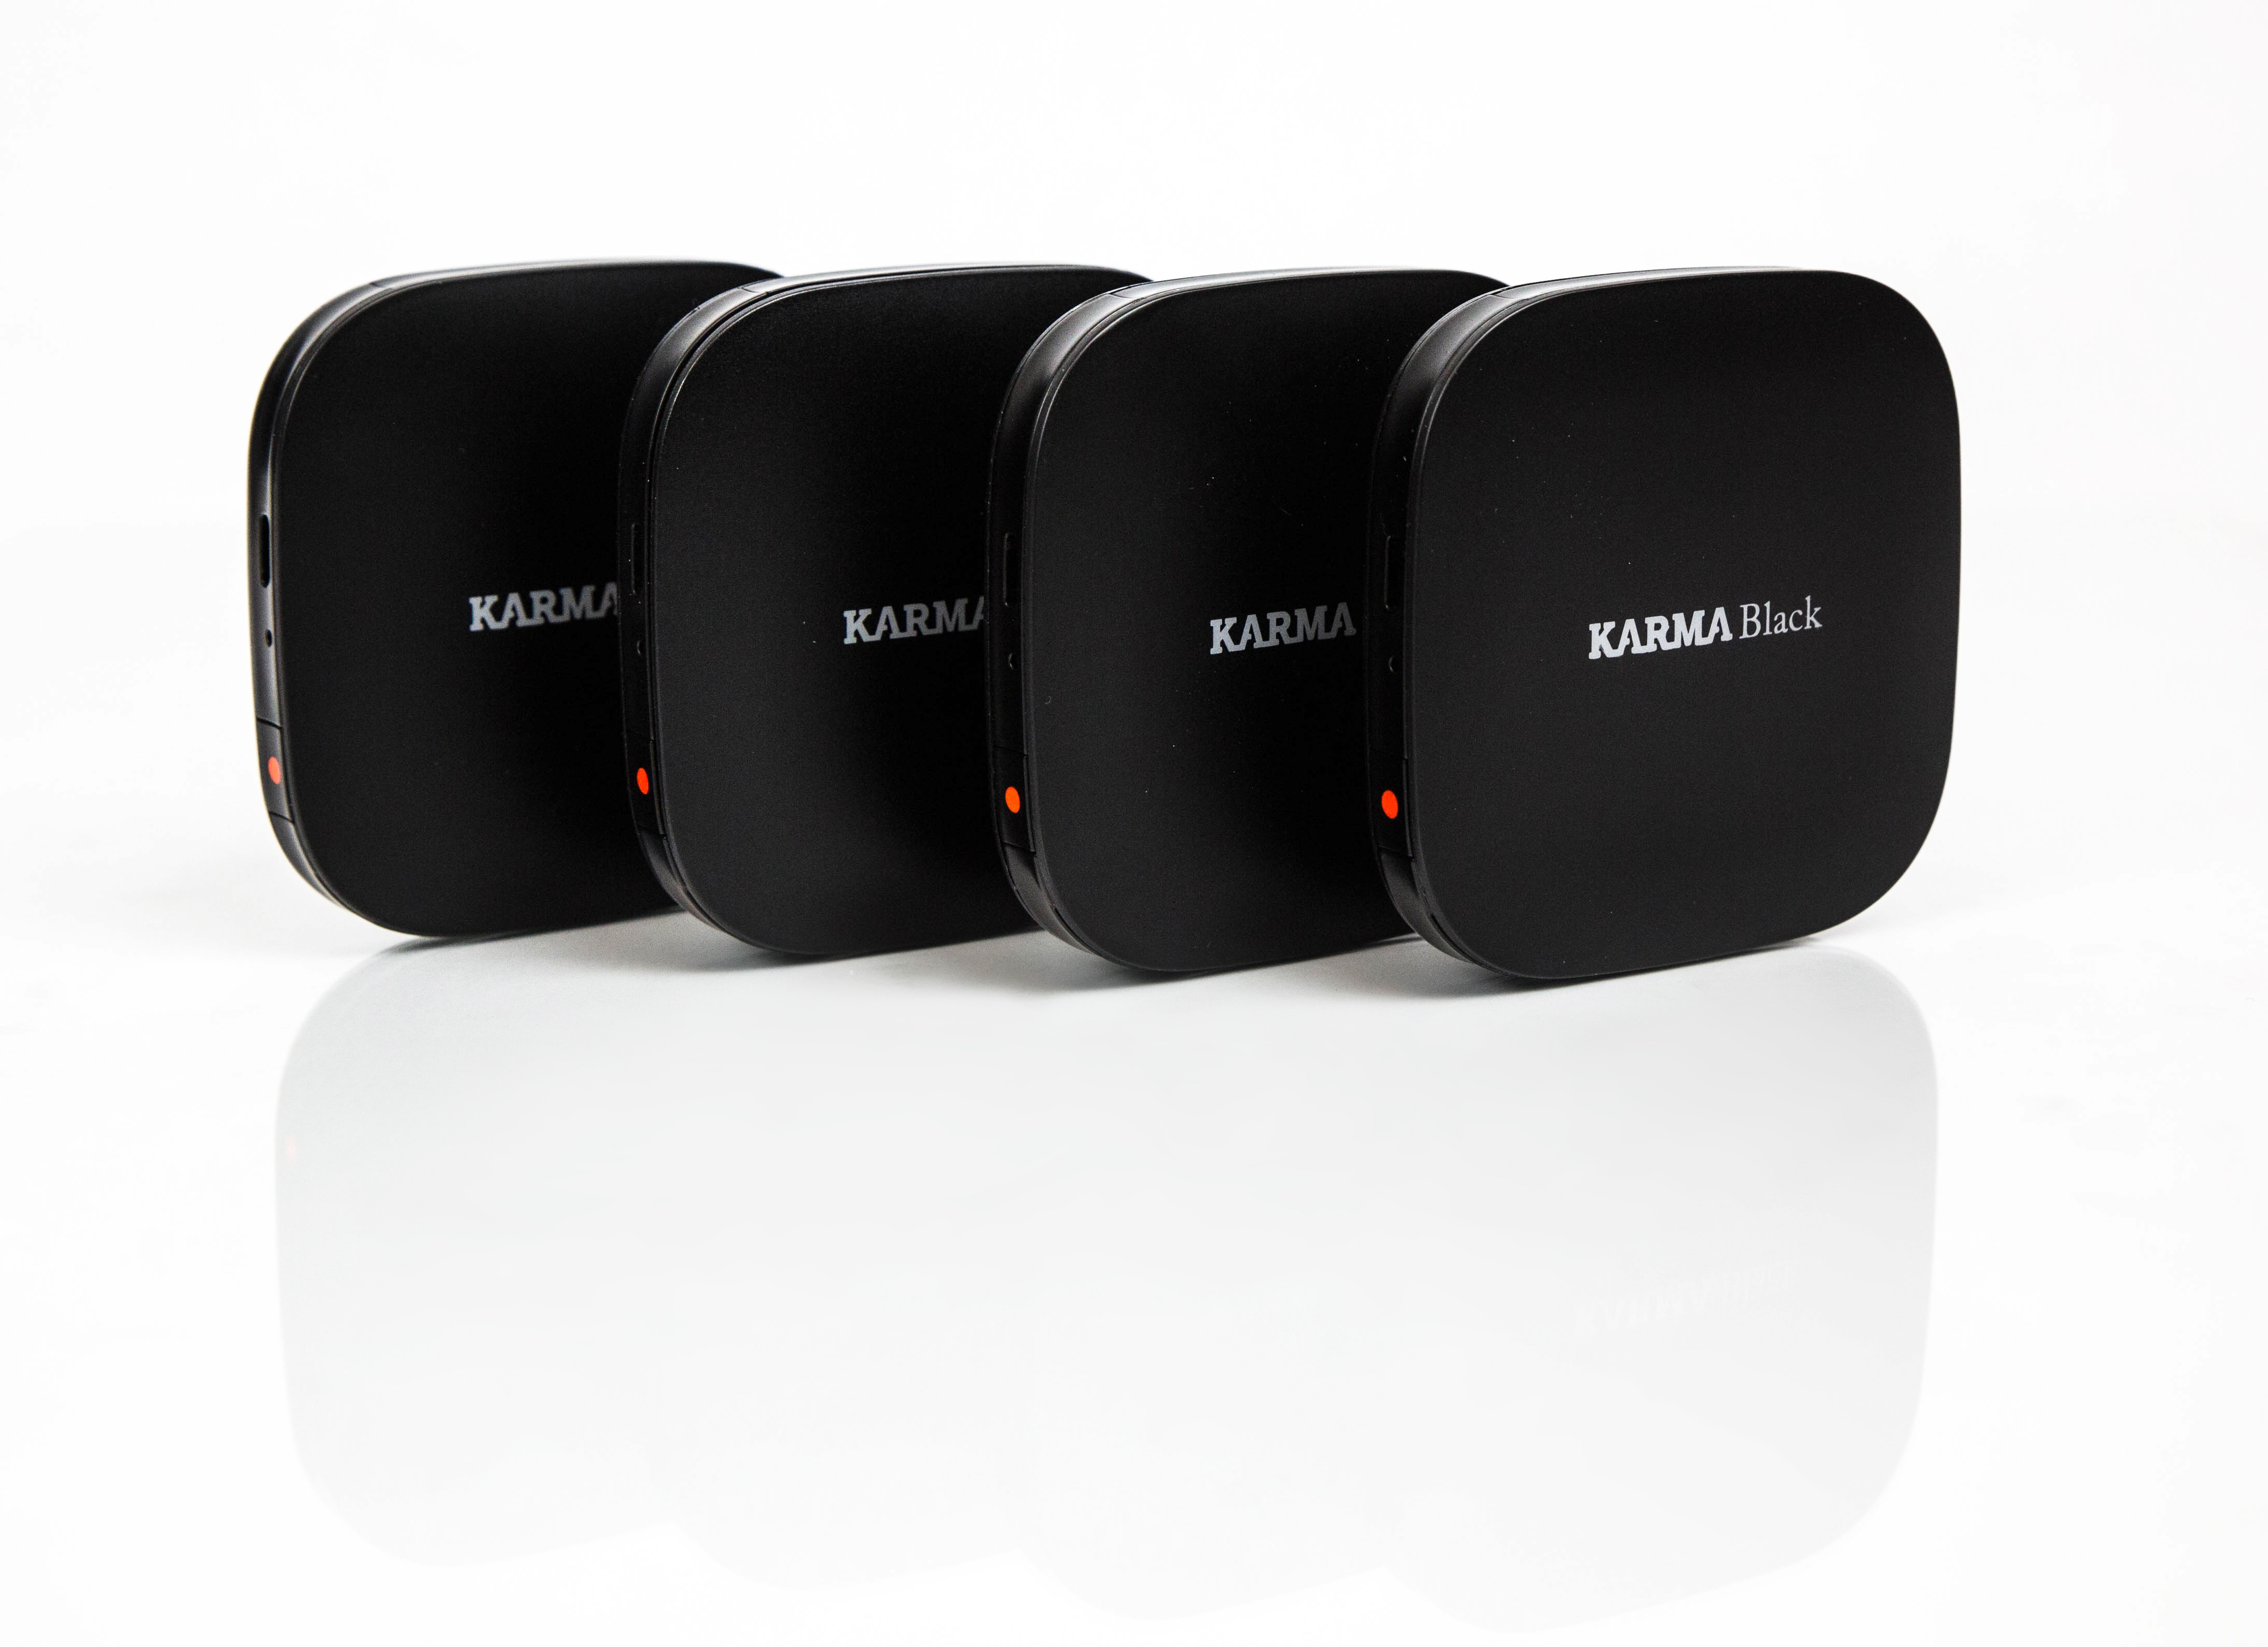 Karma Mobility Announces Ship Date of Karma Black with In-Home Services